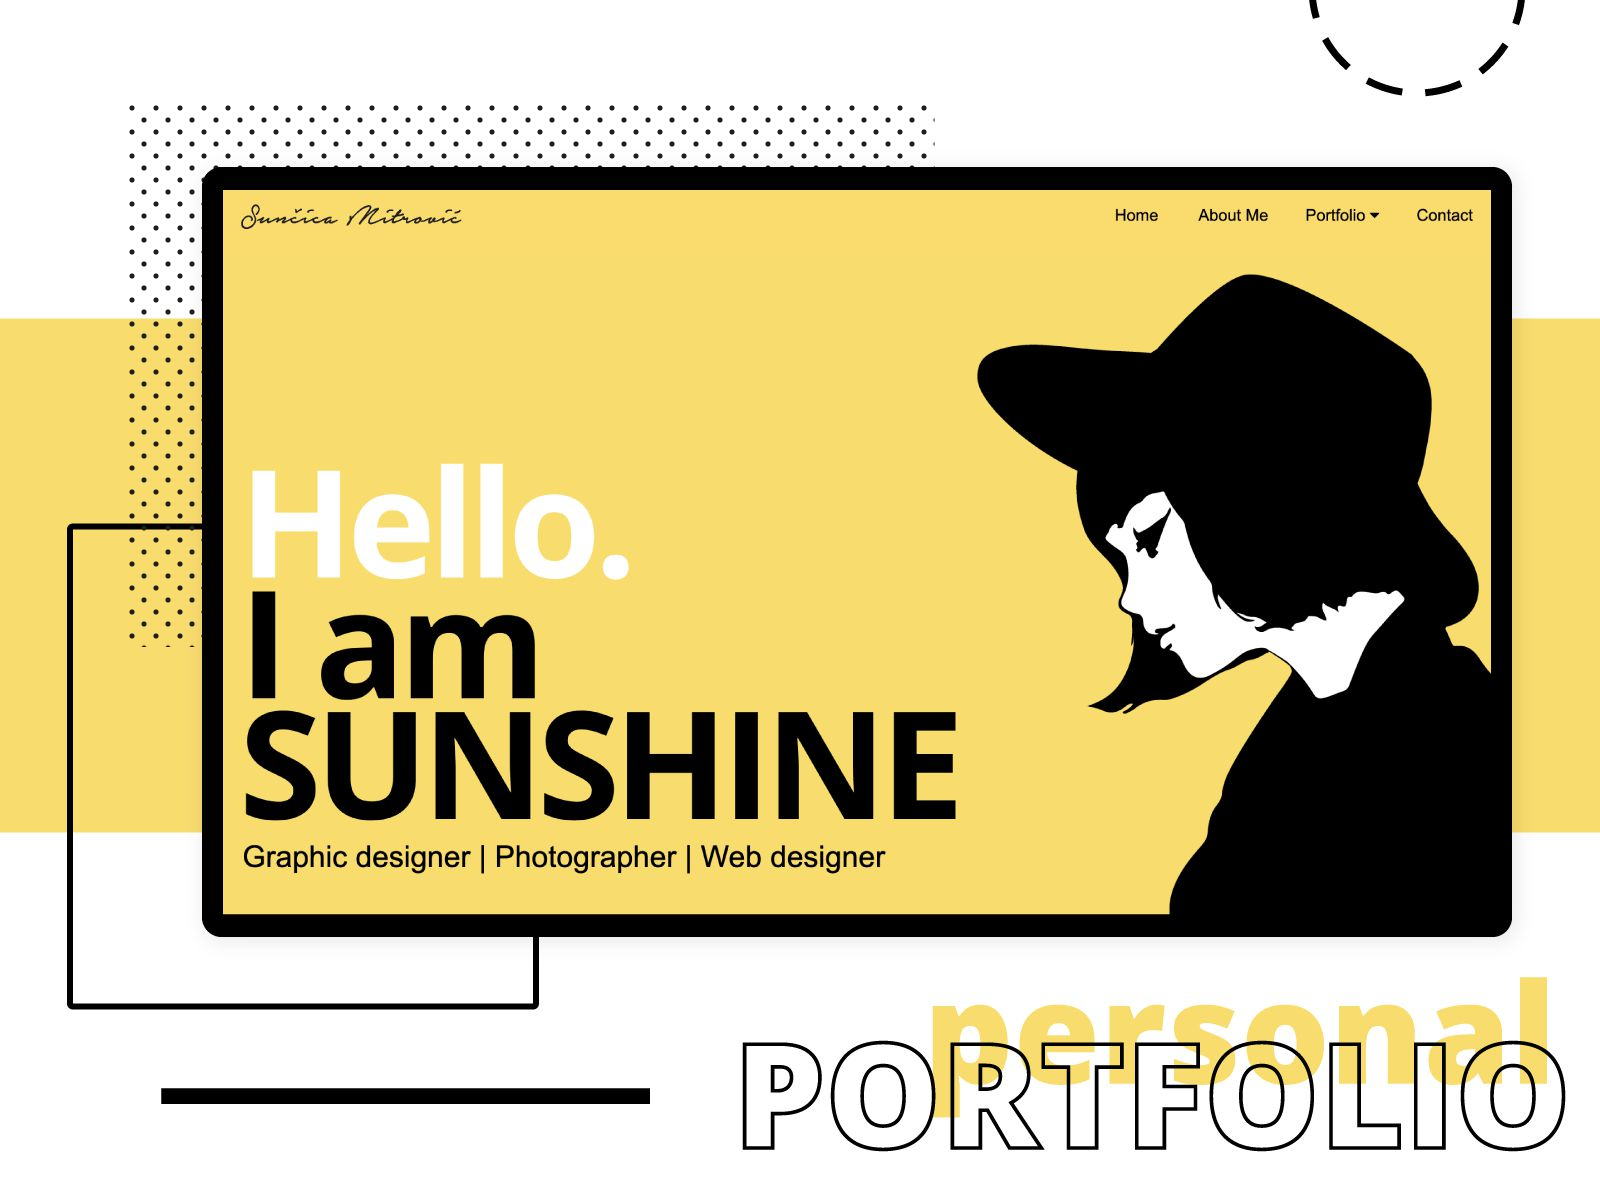 HOW TO MAKE A PORTFOLIO FOR GRAPHIC DESIGNER